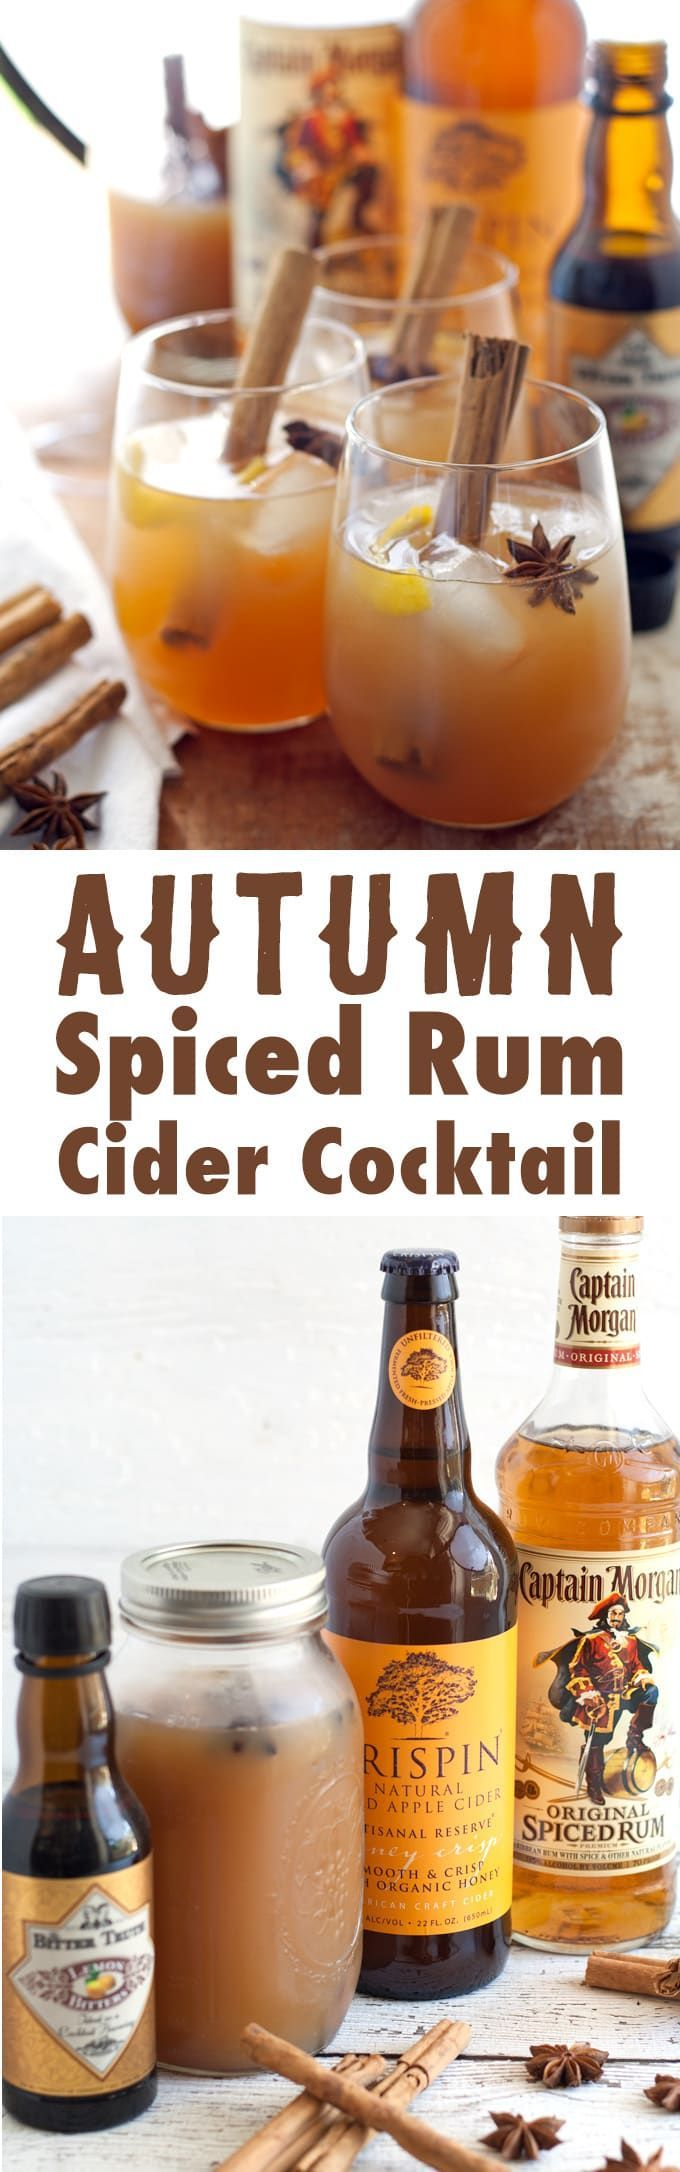 2207 best cocktail drink recipes images on pinterest for Spiced rum drink recipes